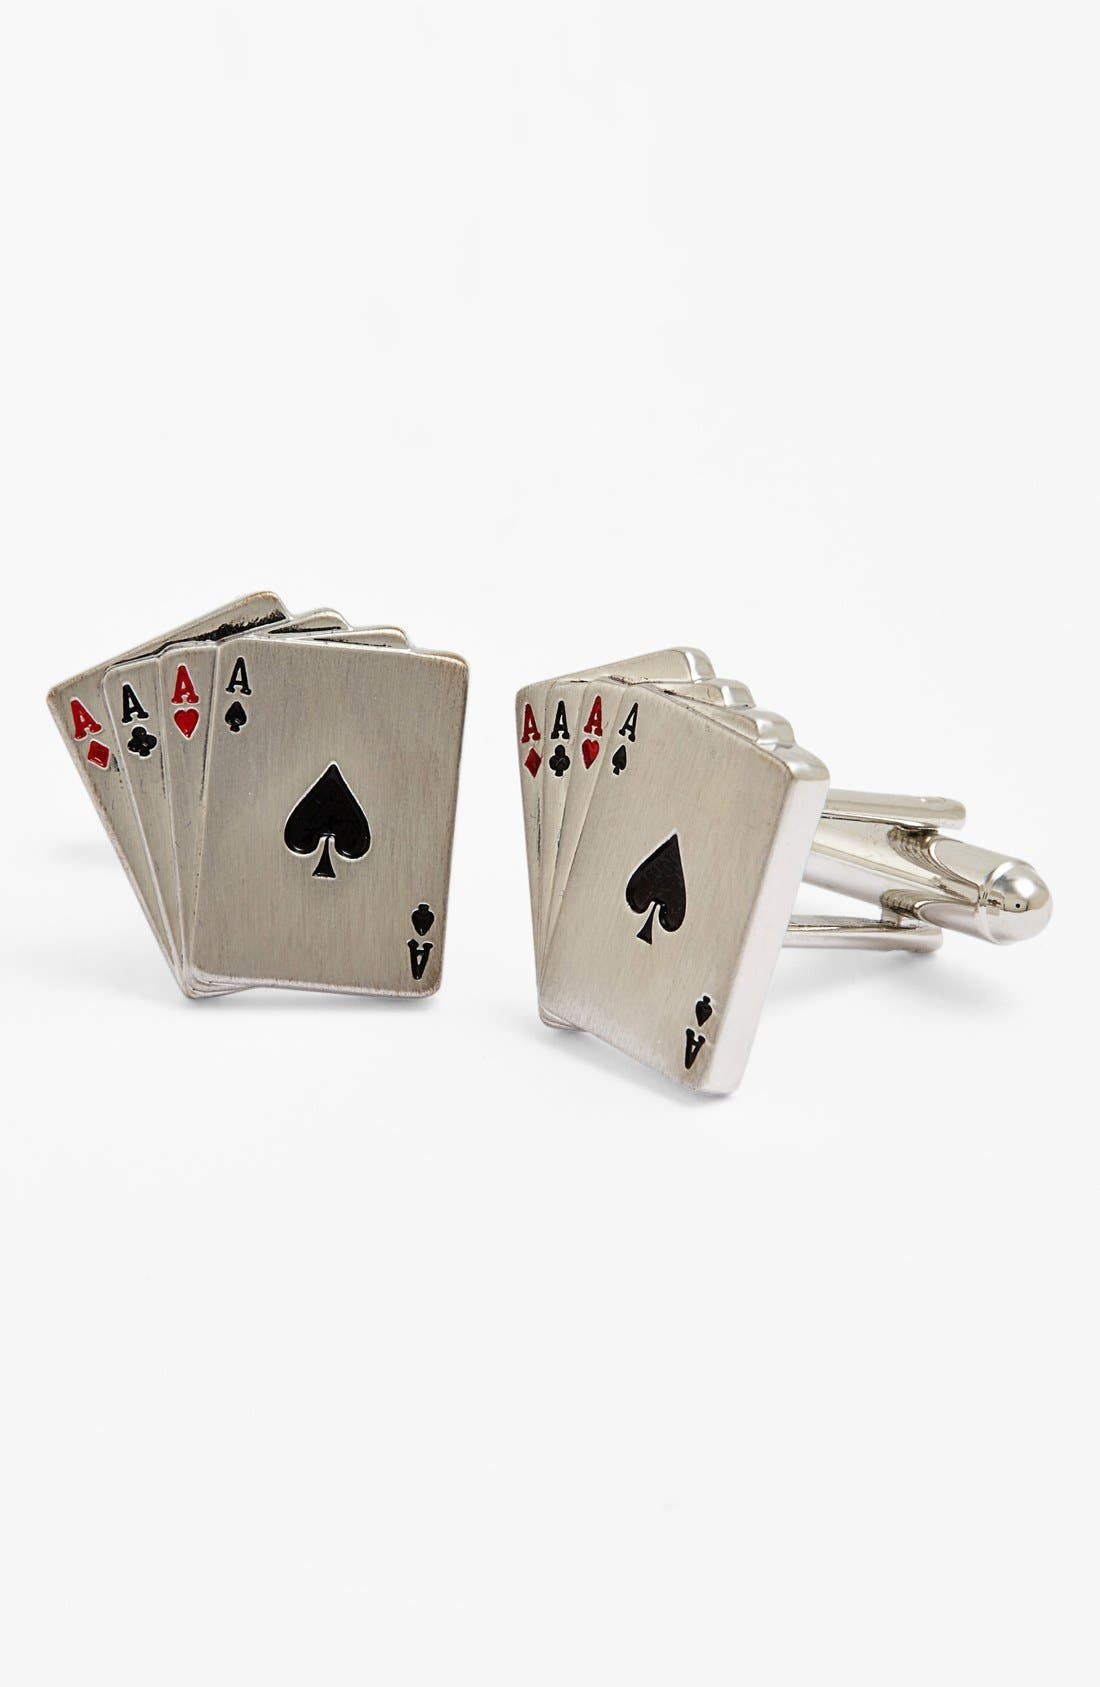 'Aces Wild' Cuff Links,                             Main thumbnail 1, color,                             040